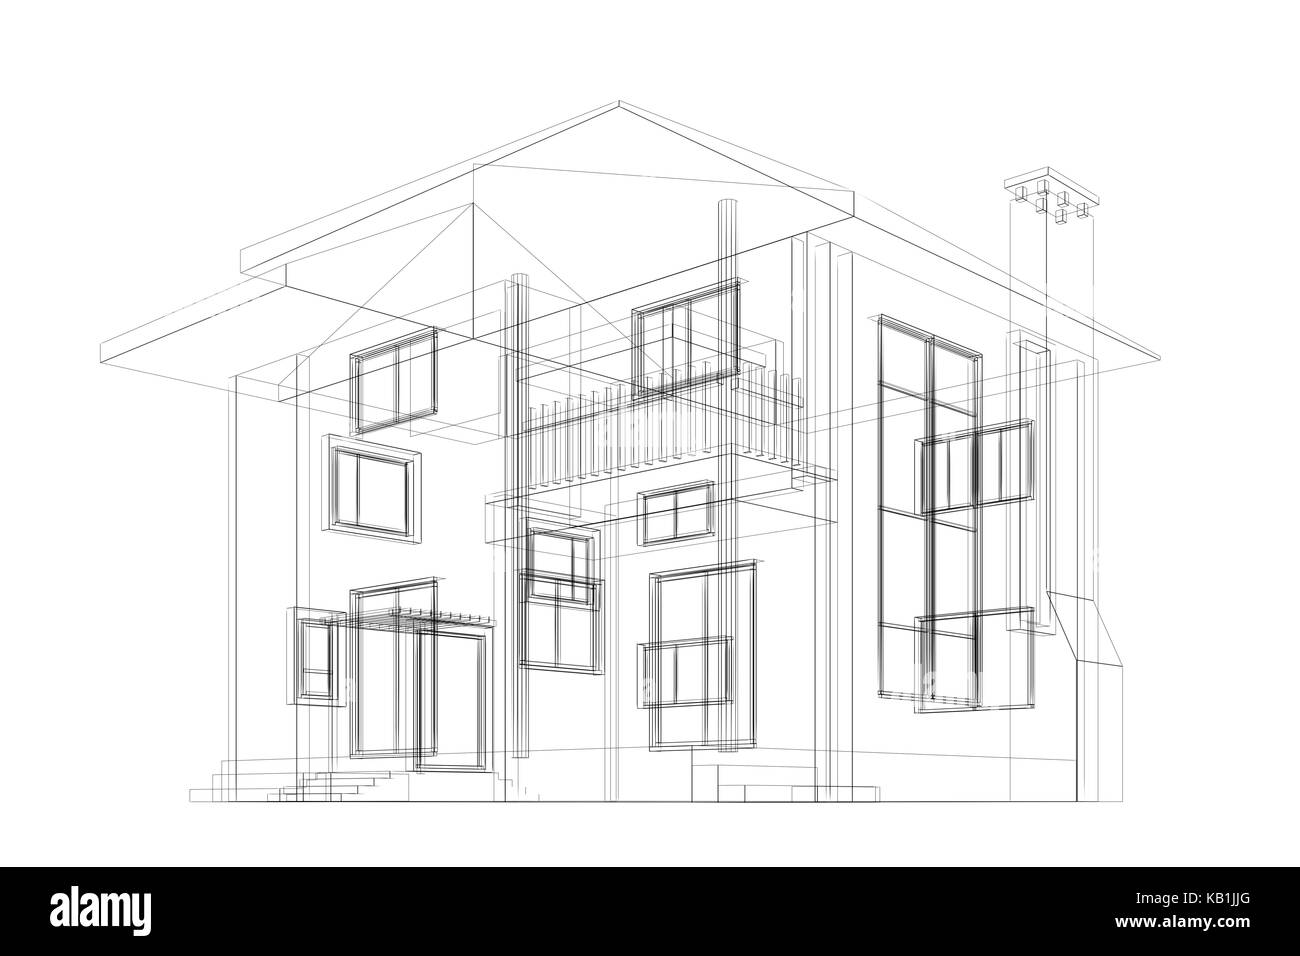 Blueprint building design and 3d rendering model my own stock photo blueprint building design and 3d rendering model my own malvernweather